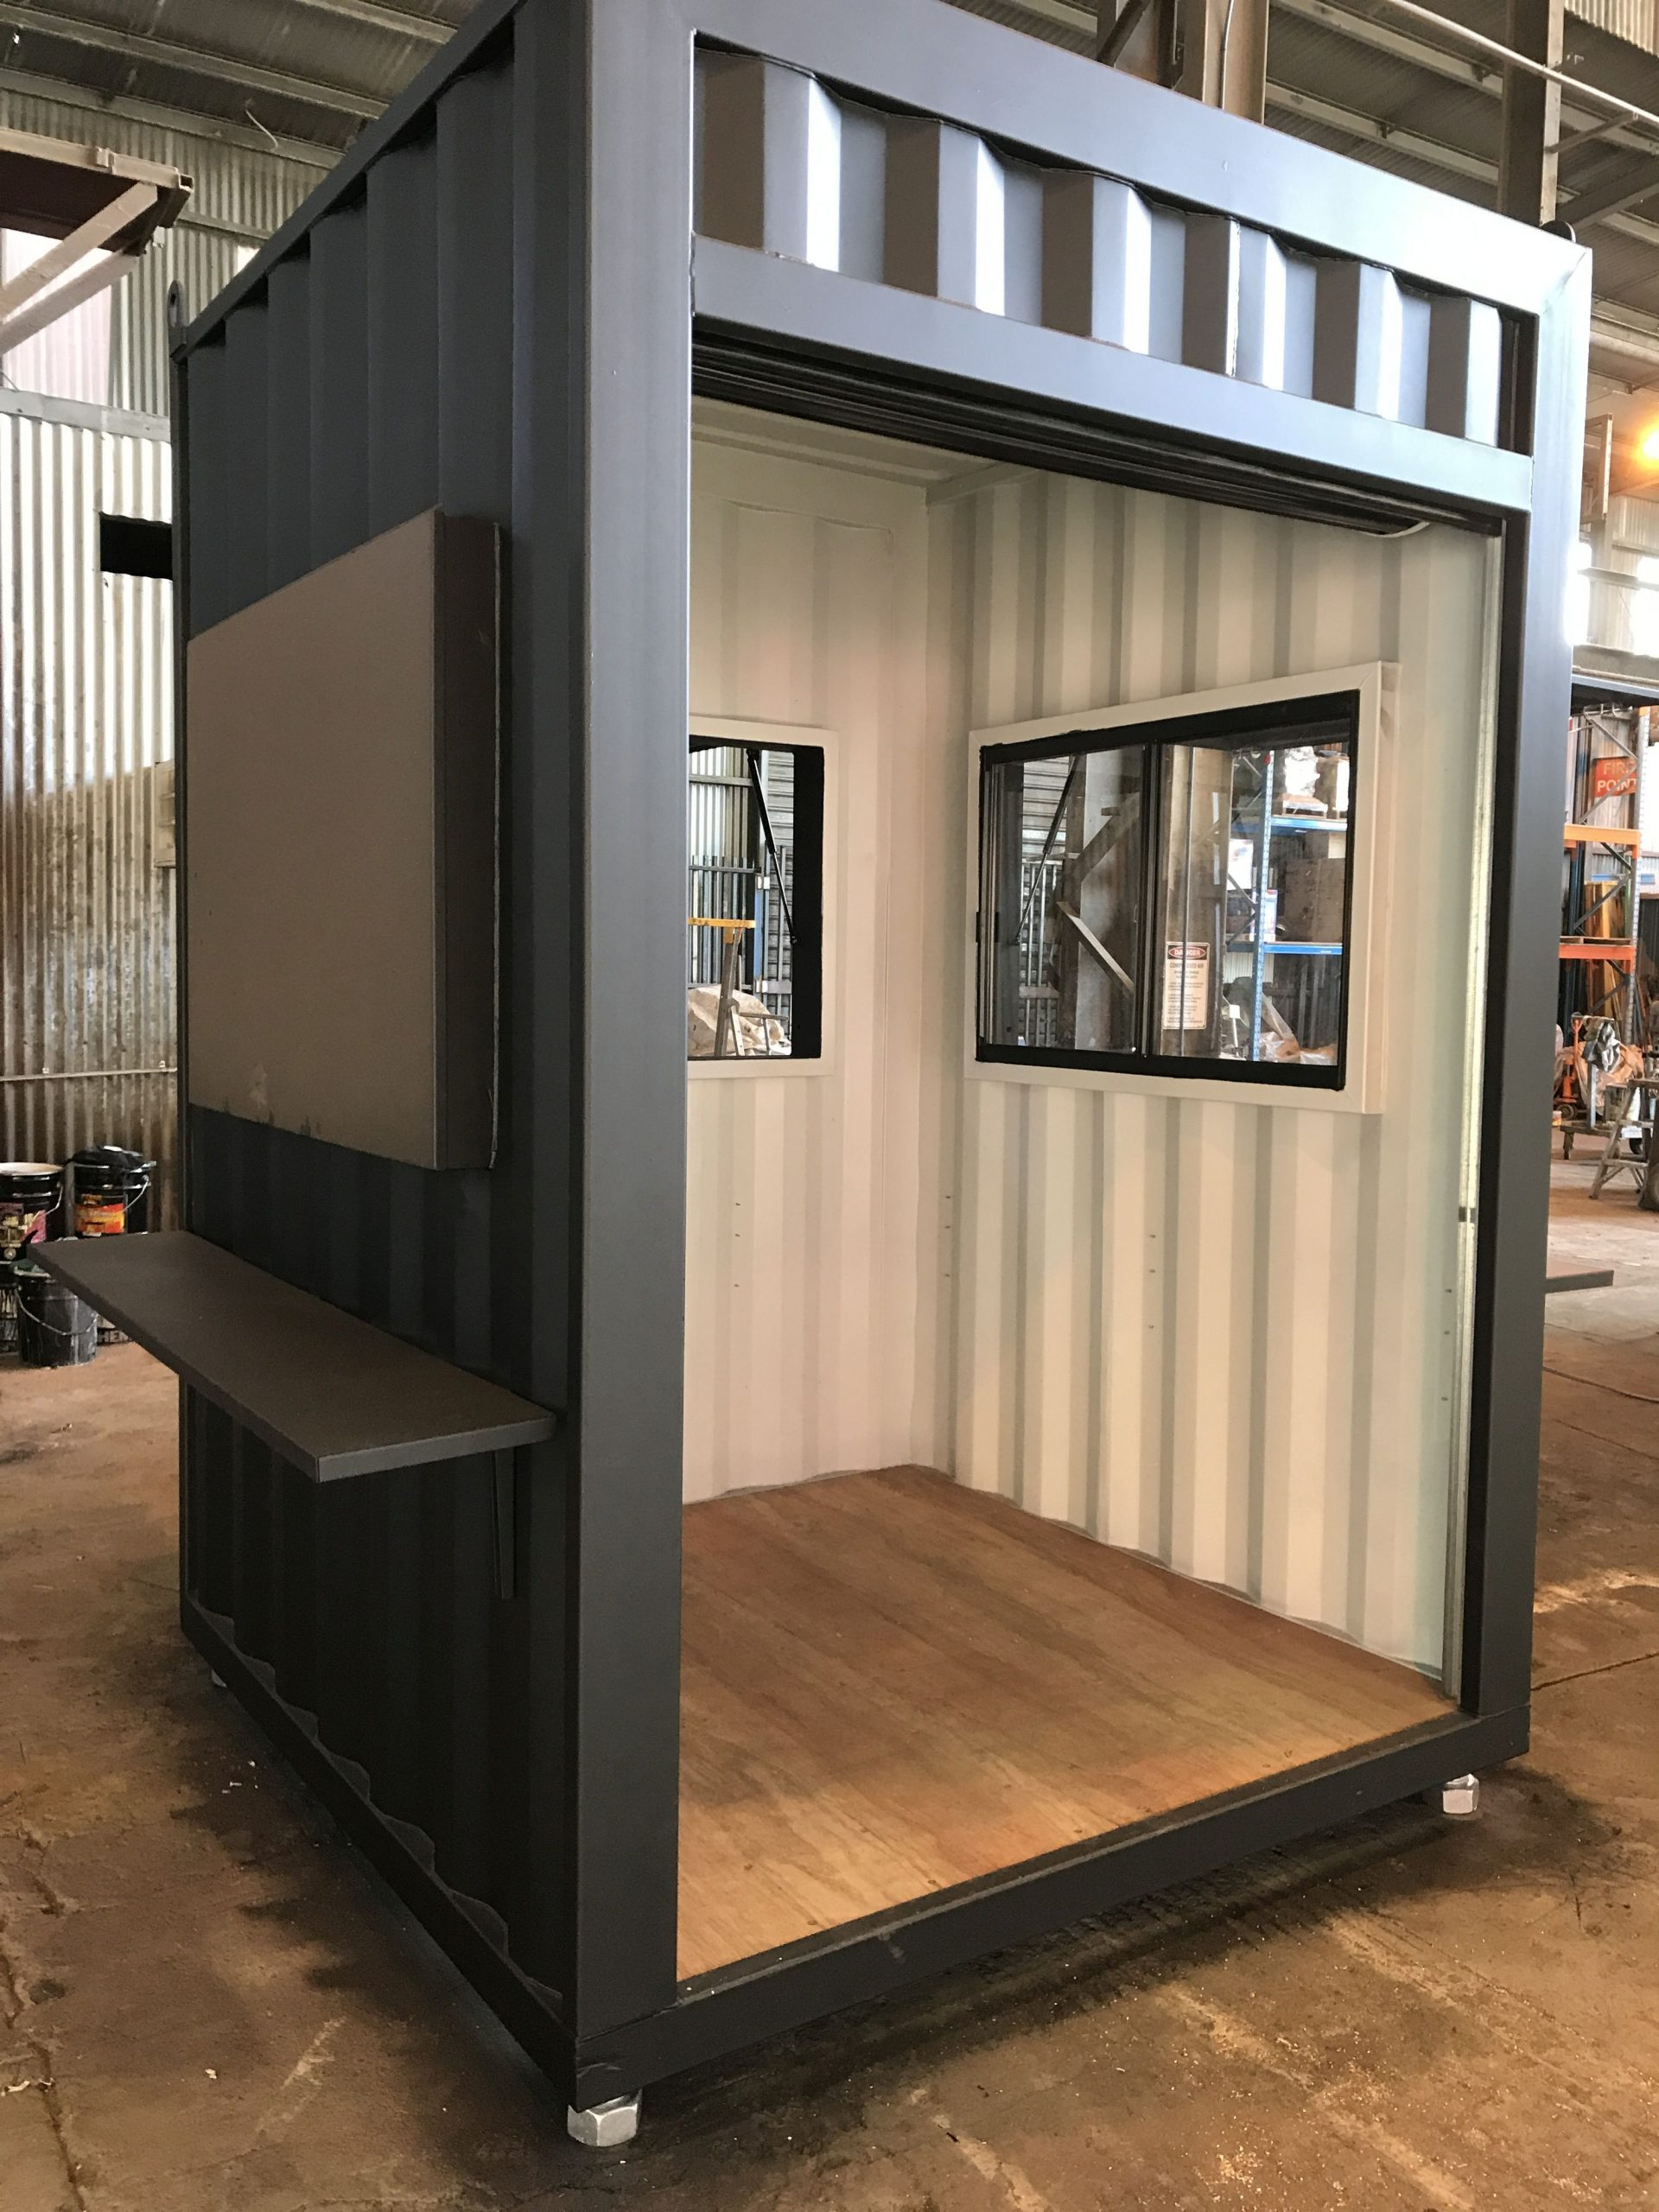 Park Art|My WordPress Blog_Shipping Container Coffee Shop For Sale